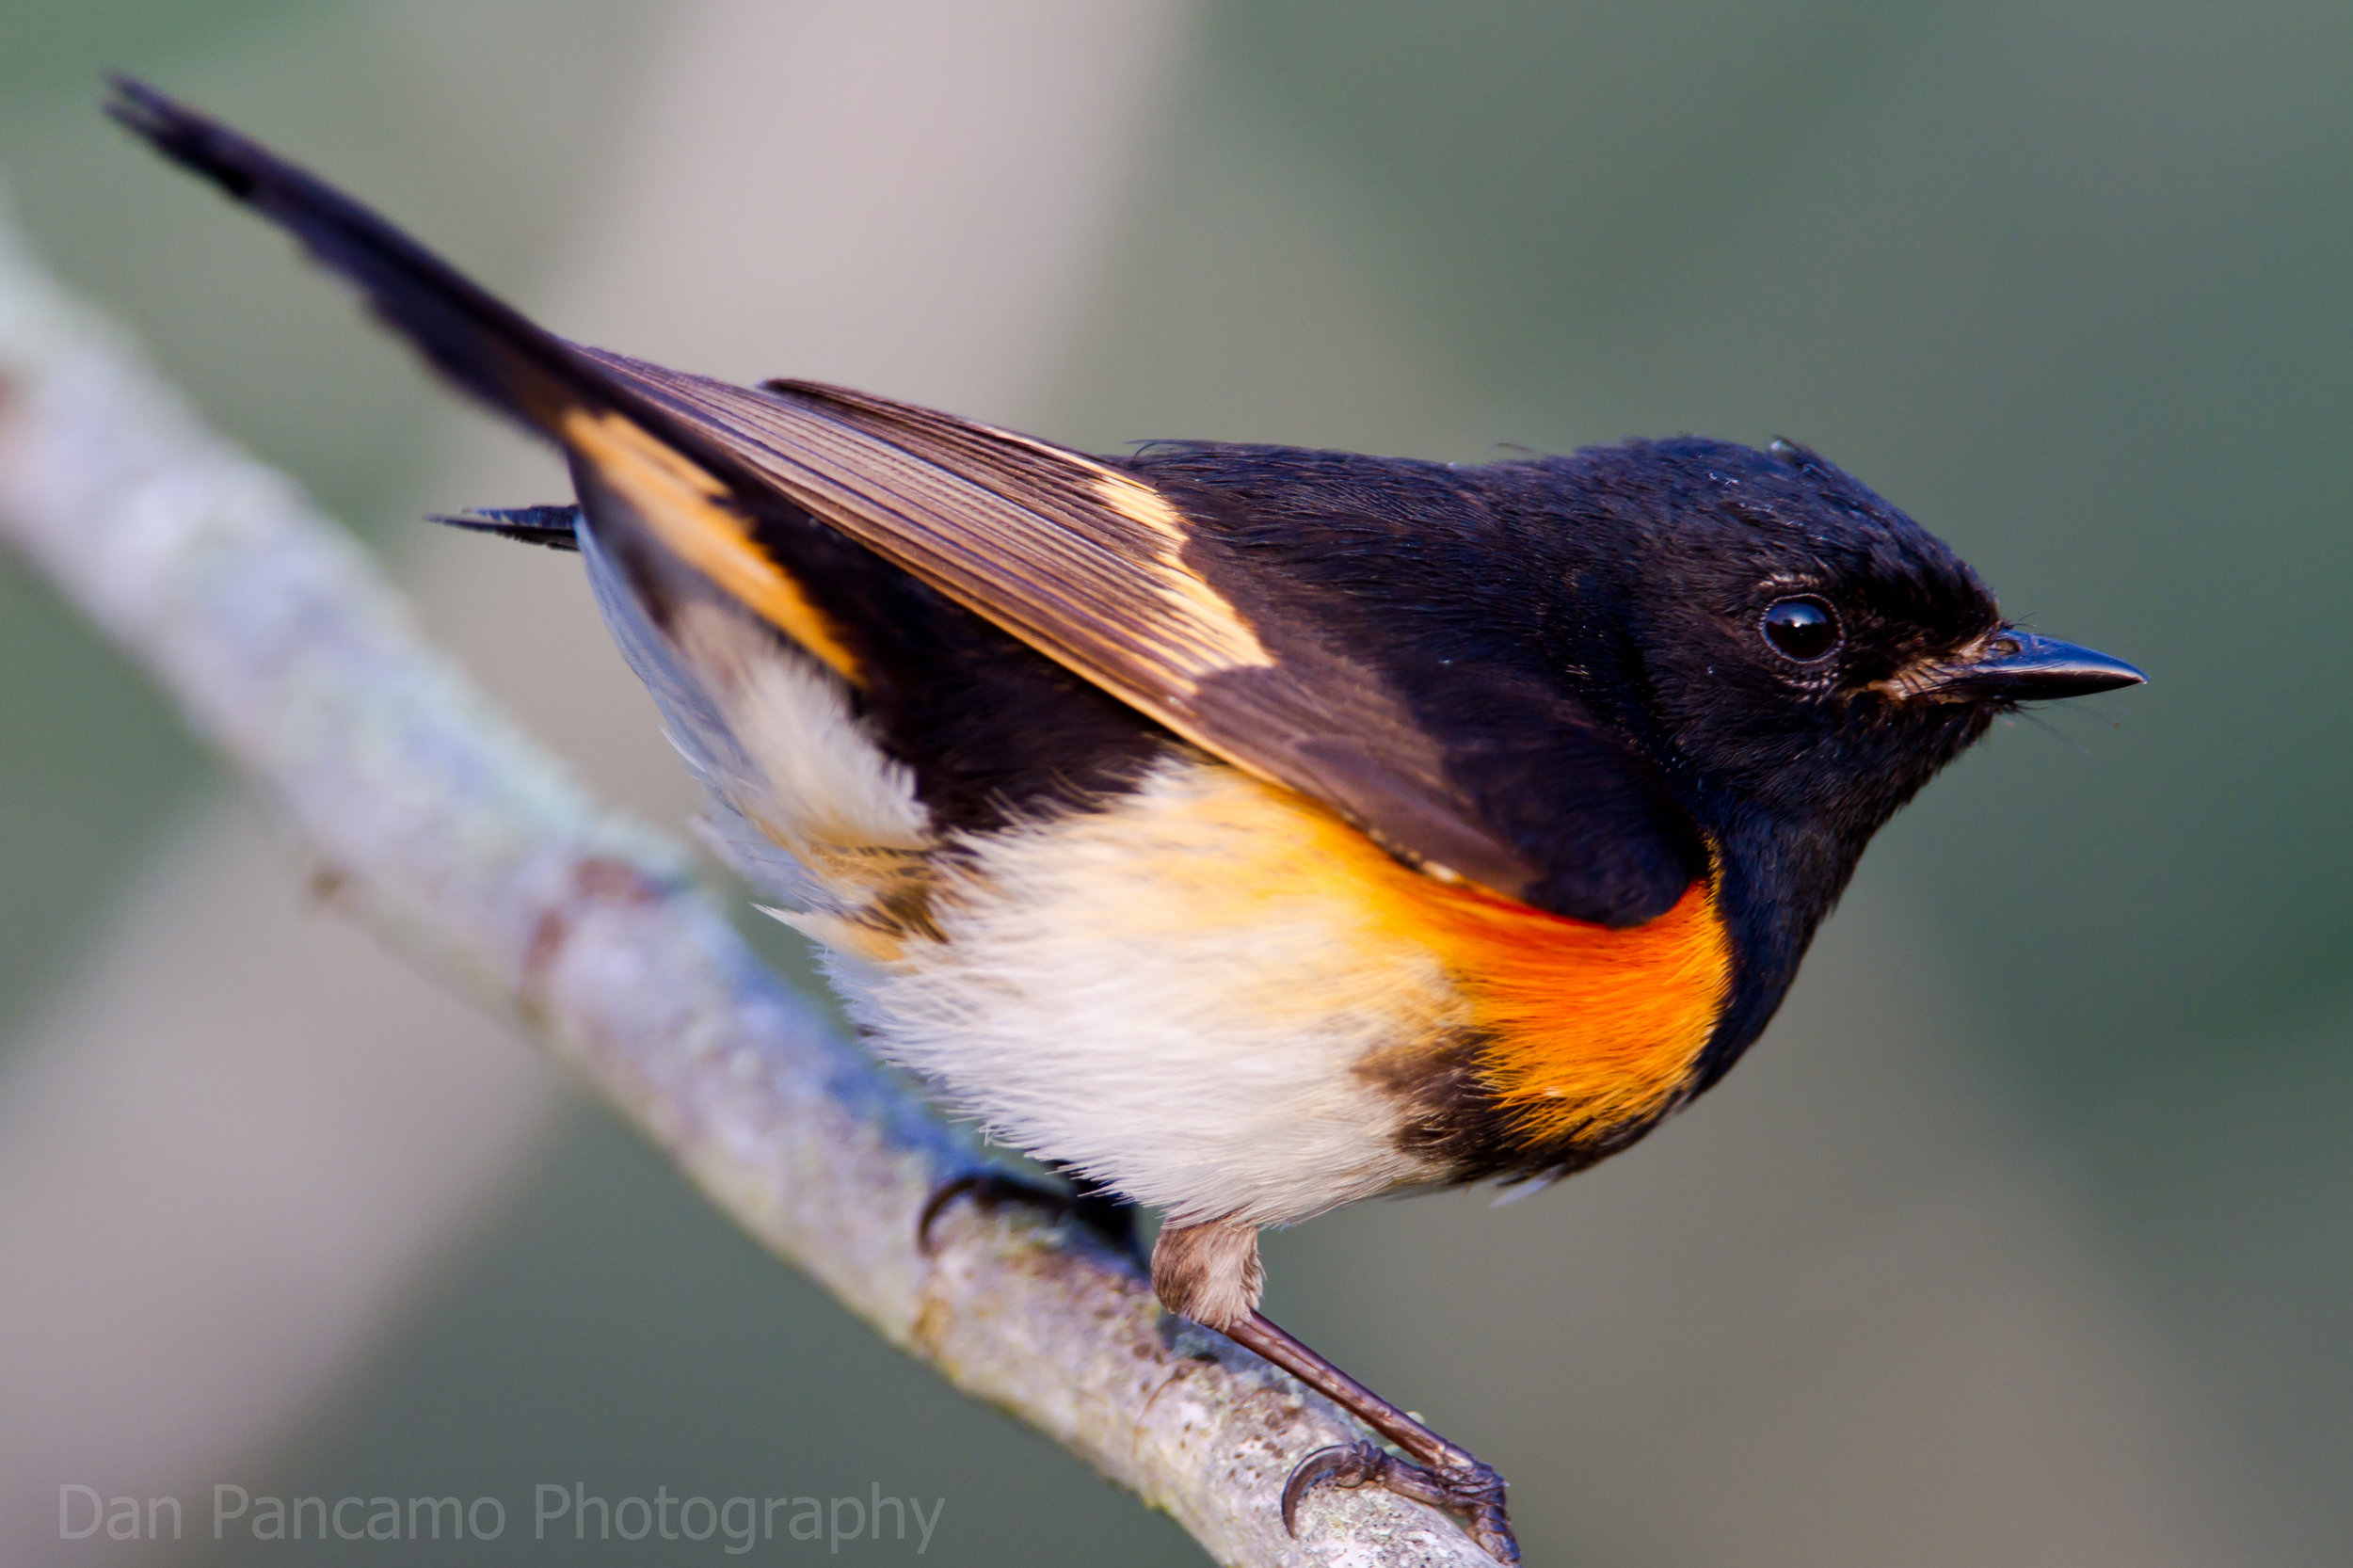 American redstart, photo by Dan Pancamo Photography